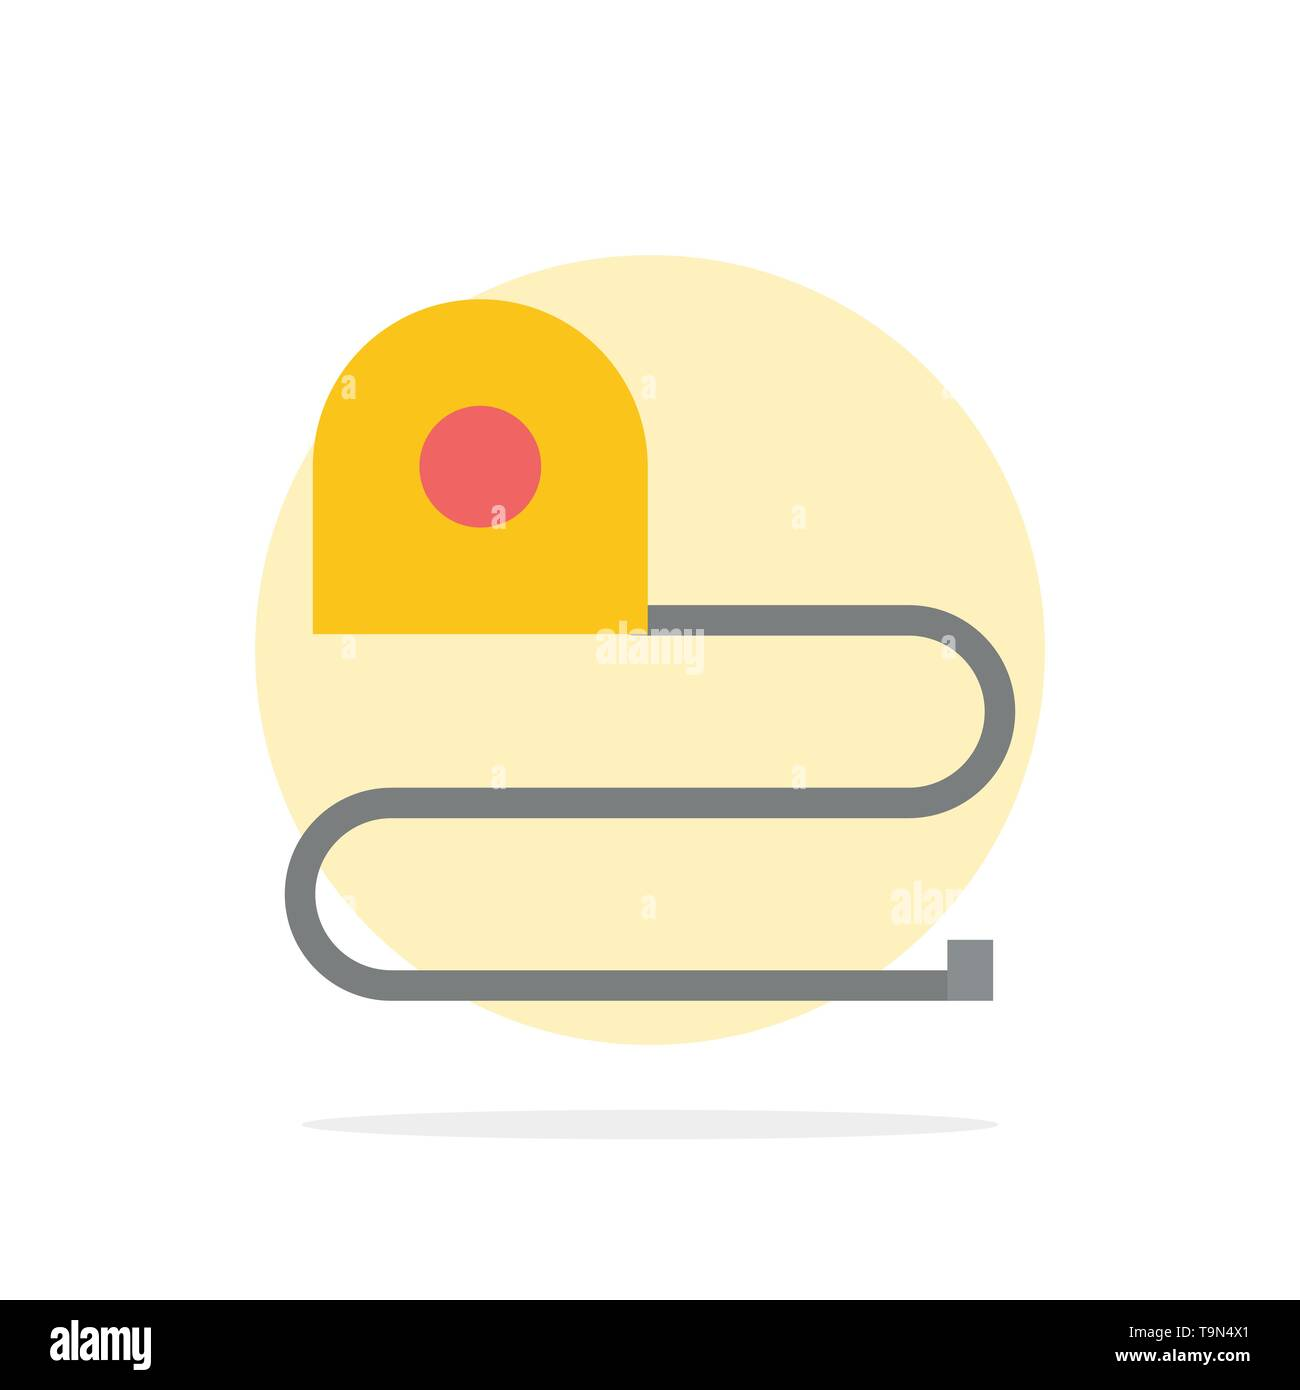 Construction, Measuring, Scale, Tape Abstract Circle Background Flat color Icon - Stock Image